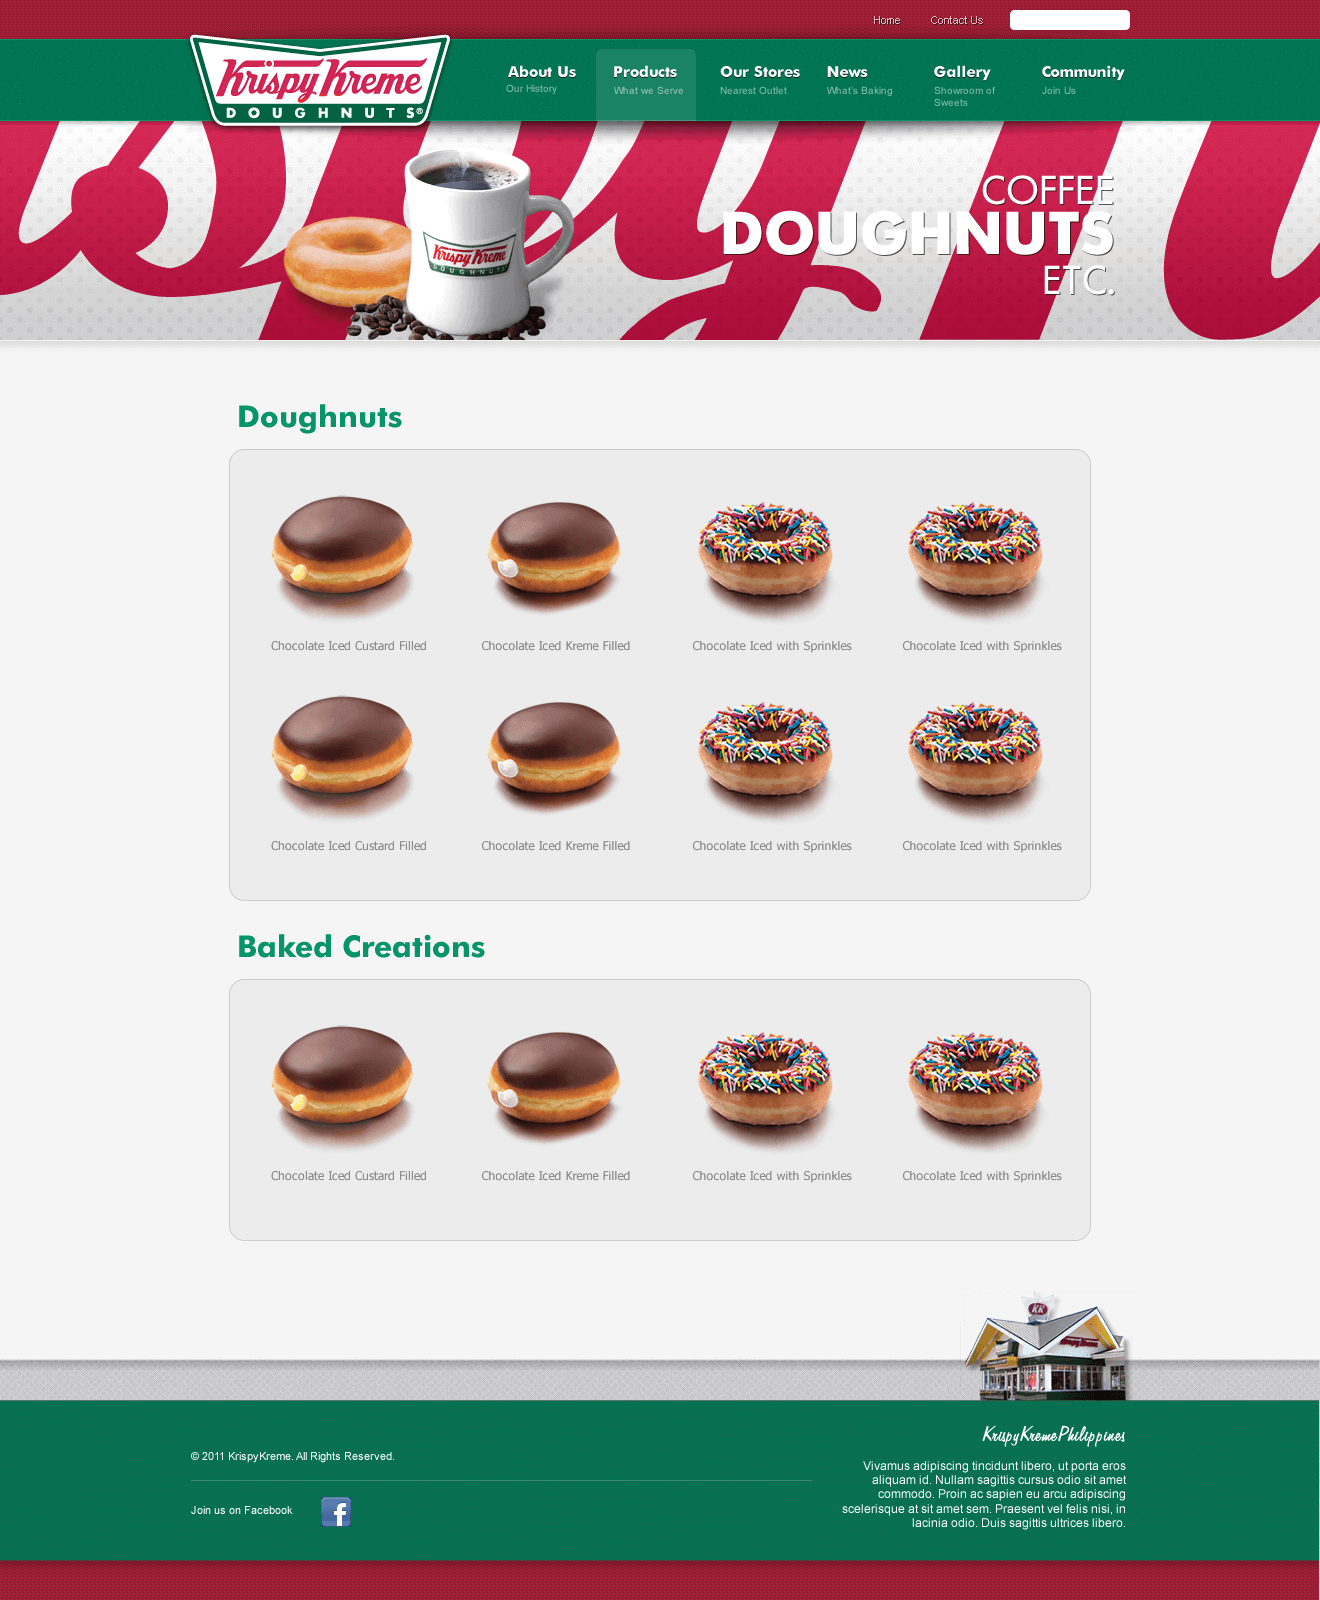 Krispy Kreme: products